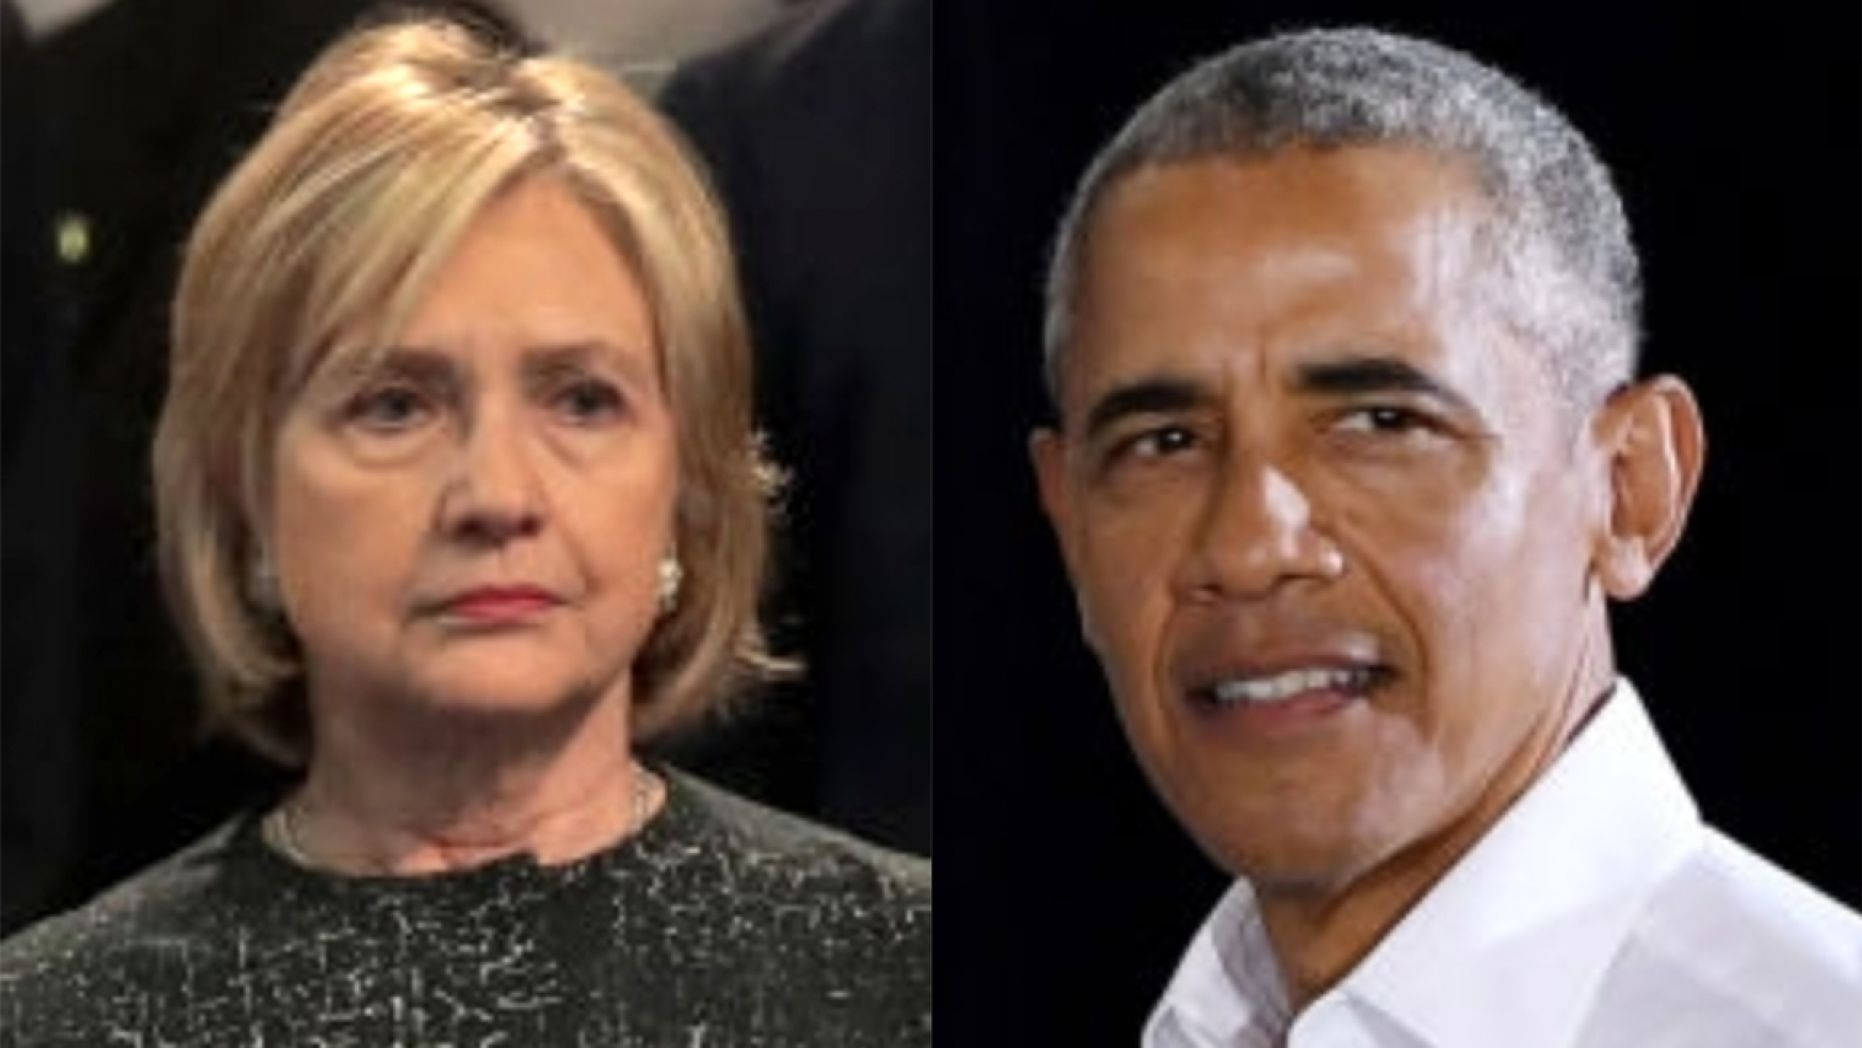 Secret Service intercepts suspicious packages sent to Obama, Hillary Clinton